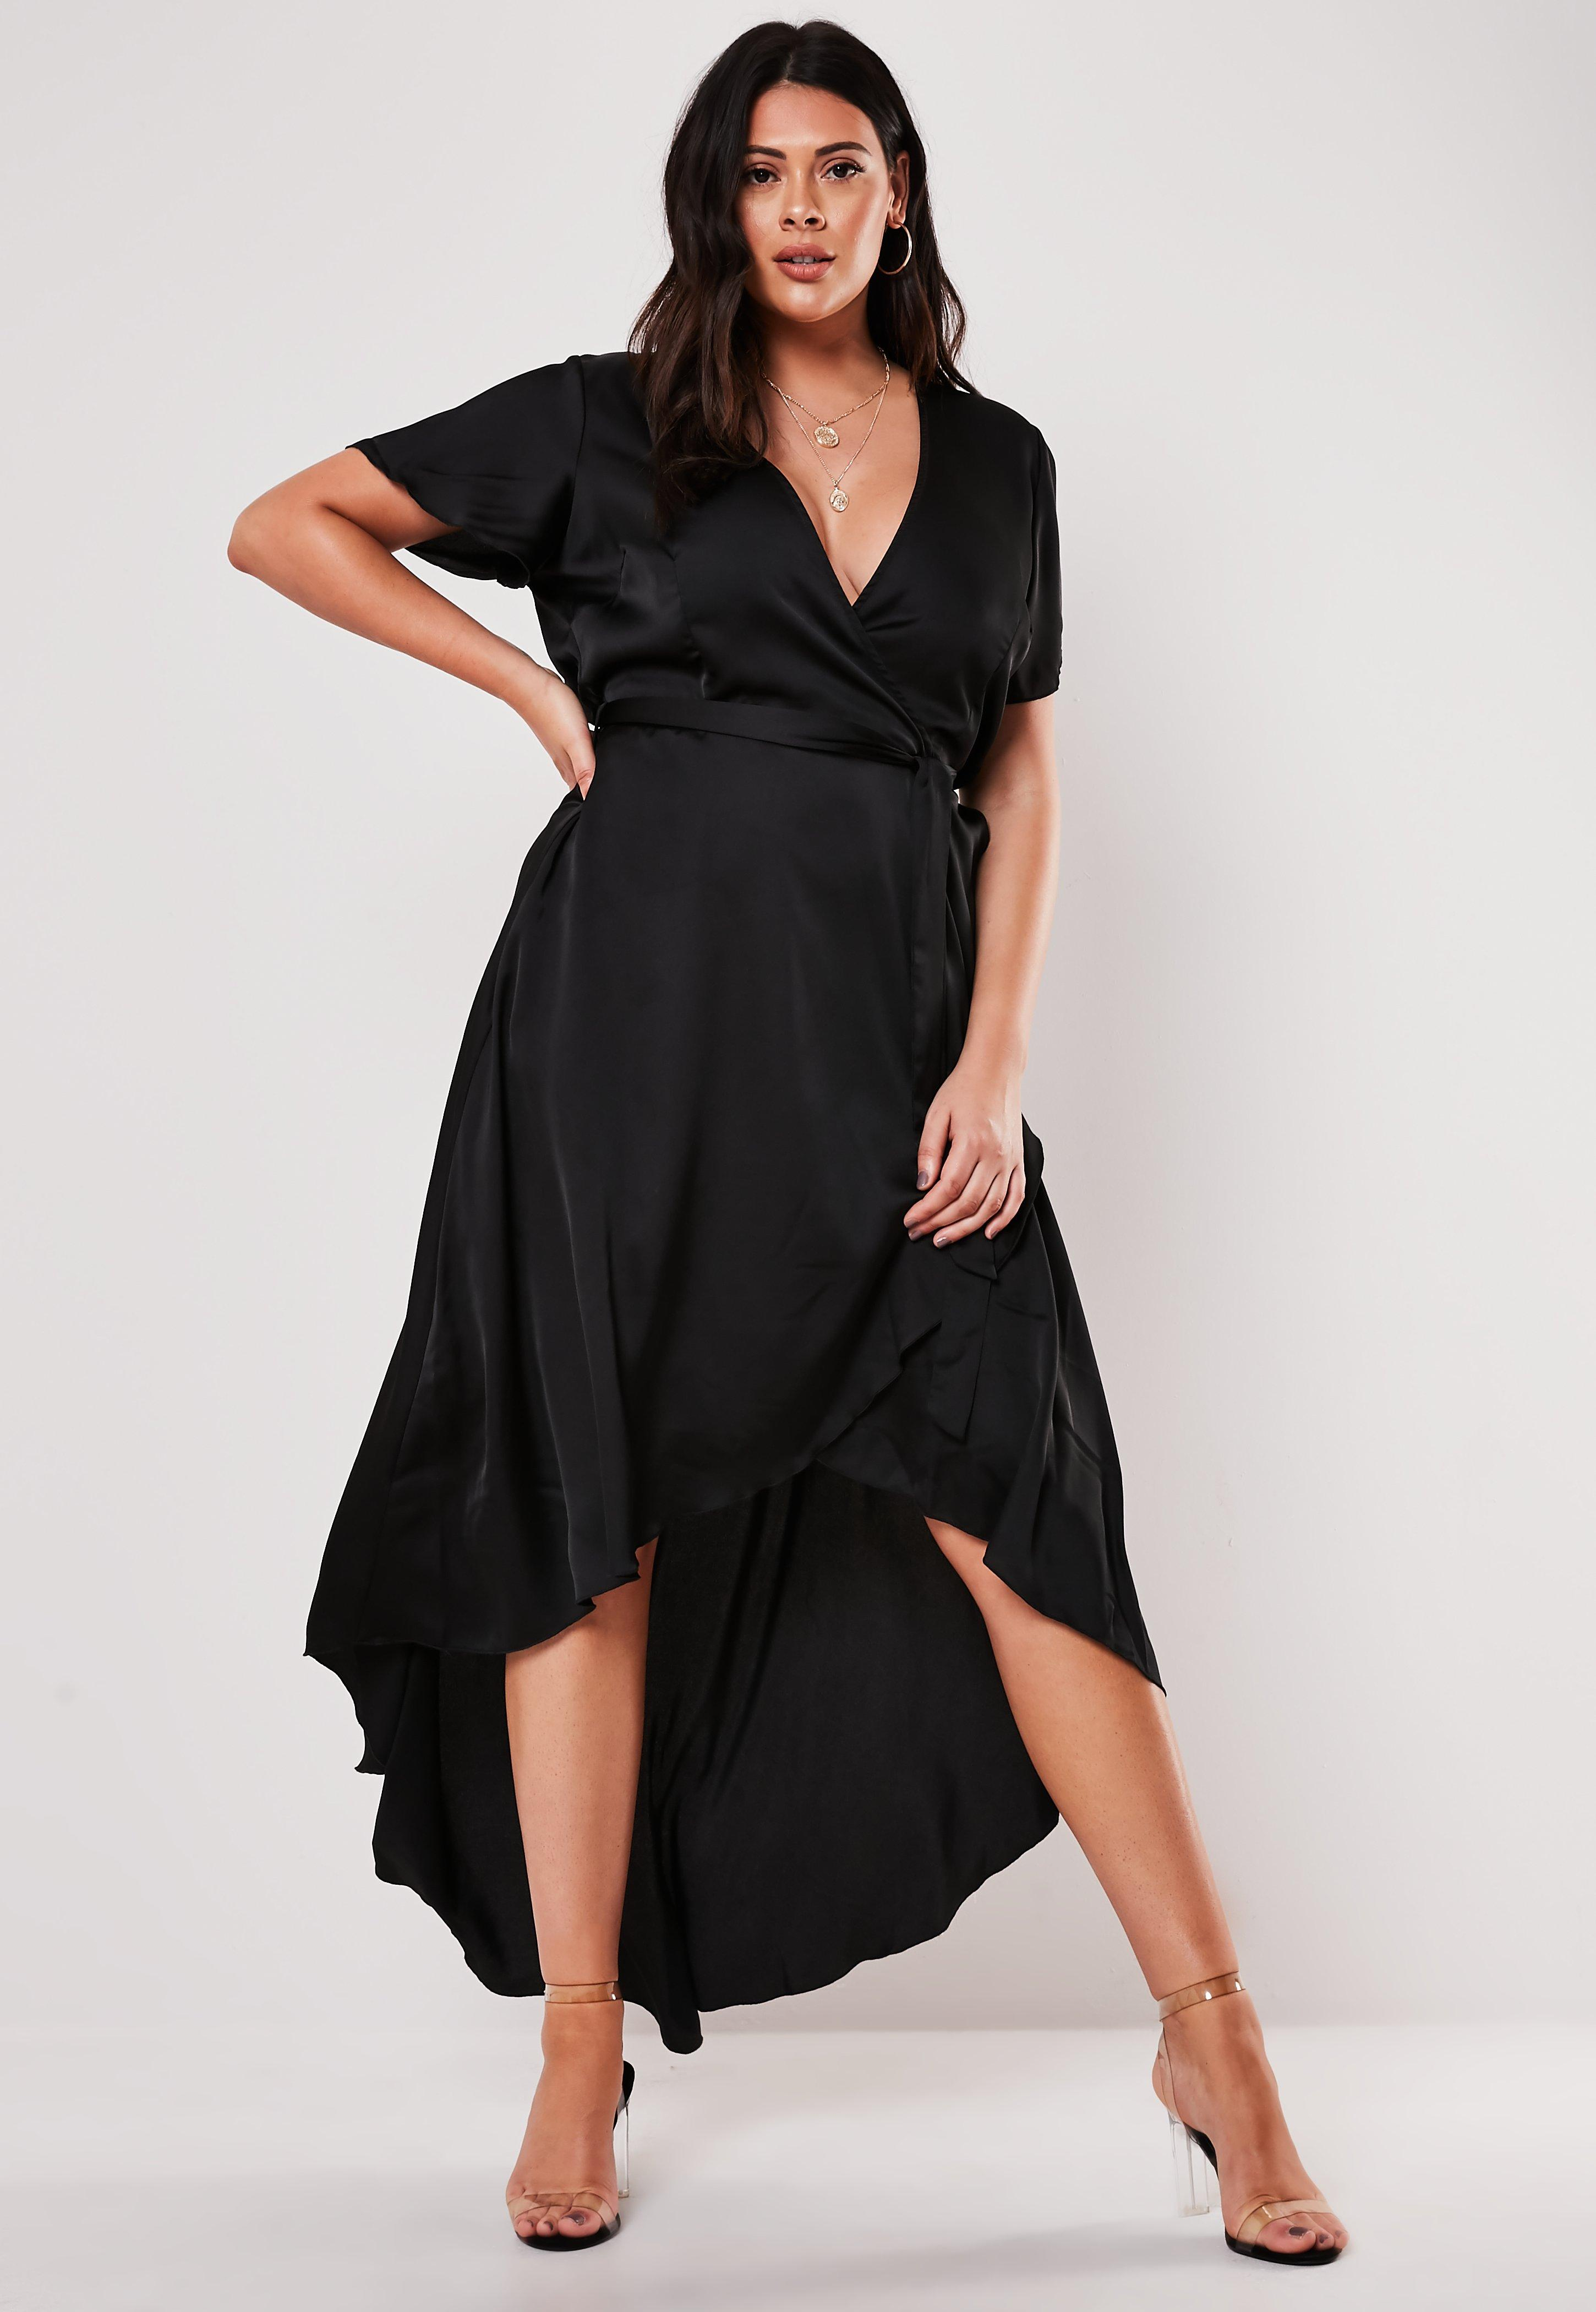 da2b30b11224 Satin Dress - Silky Dresses Online | Missguided